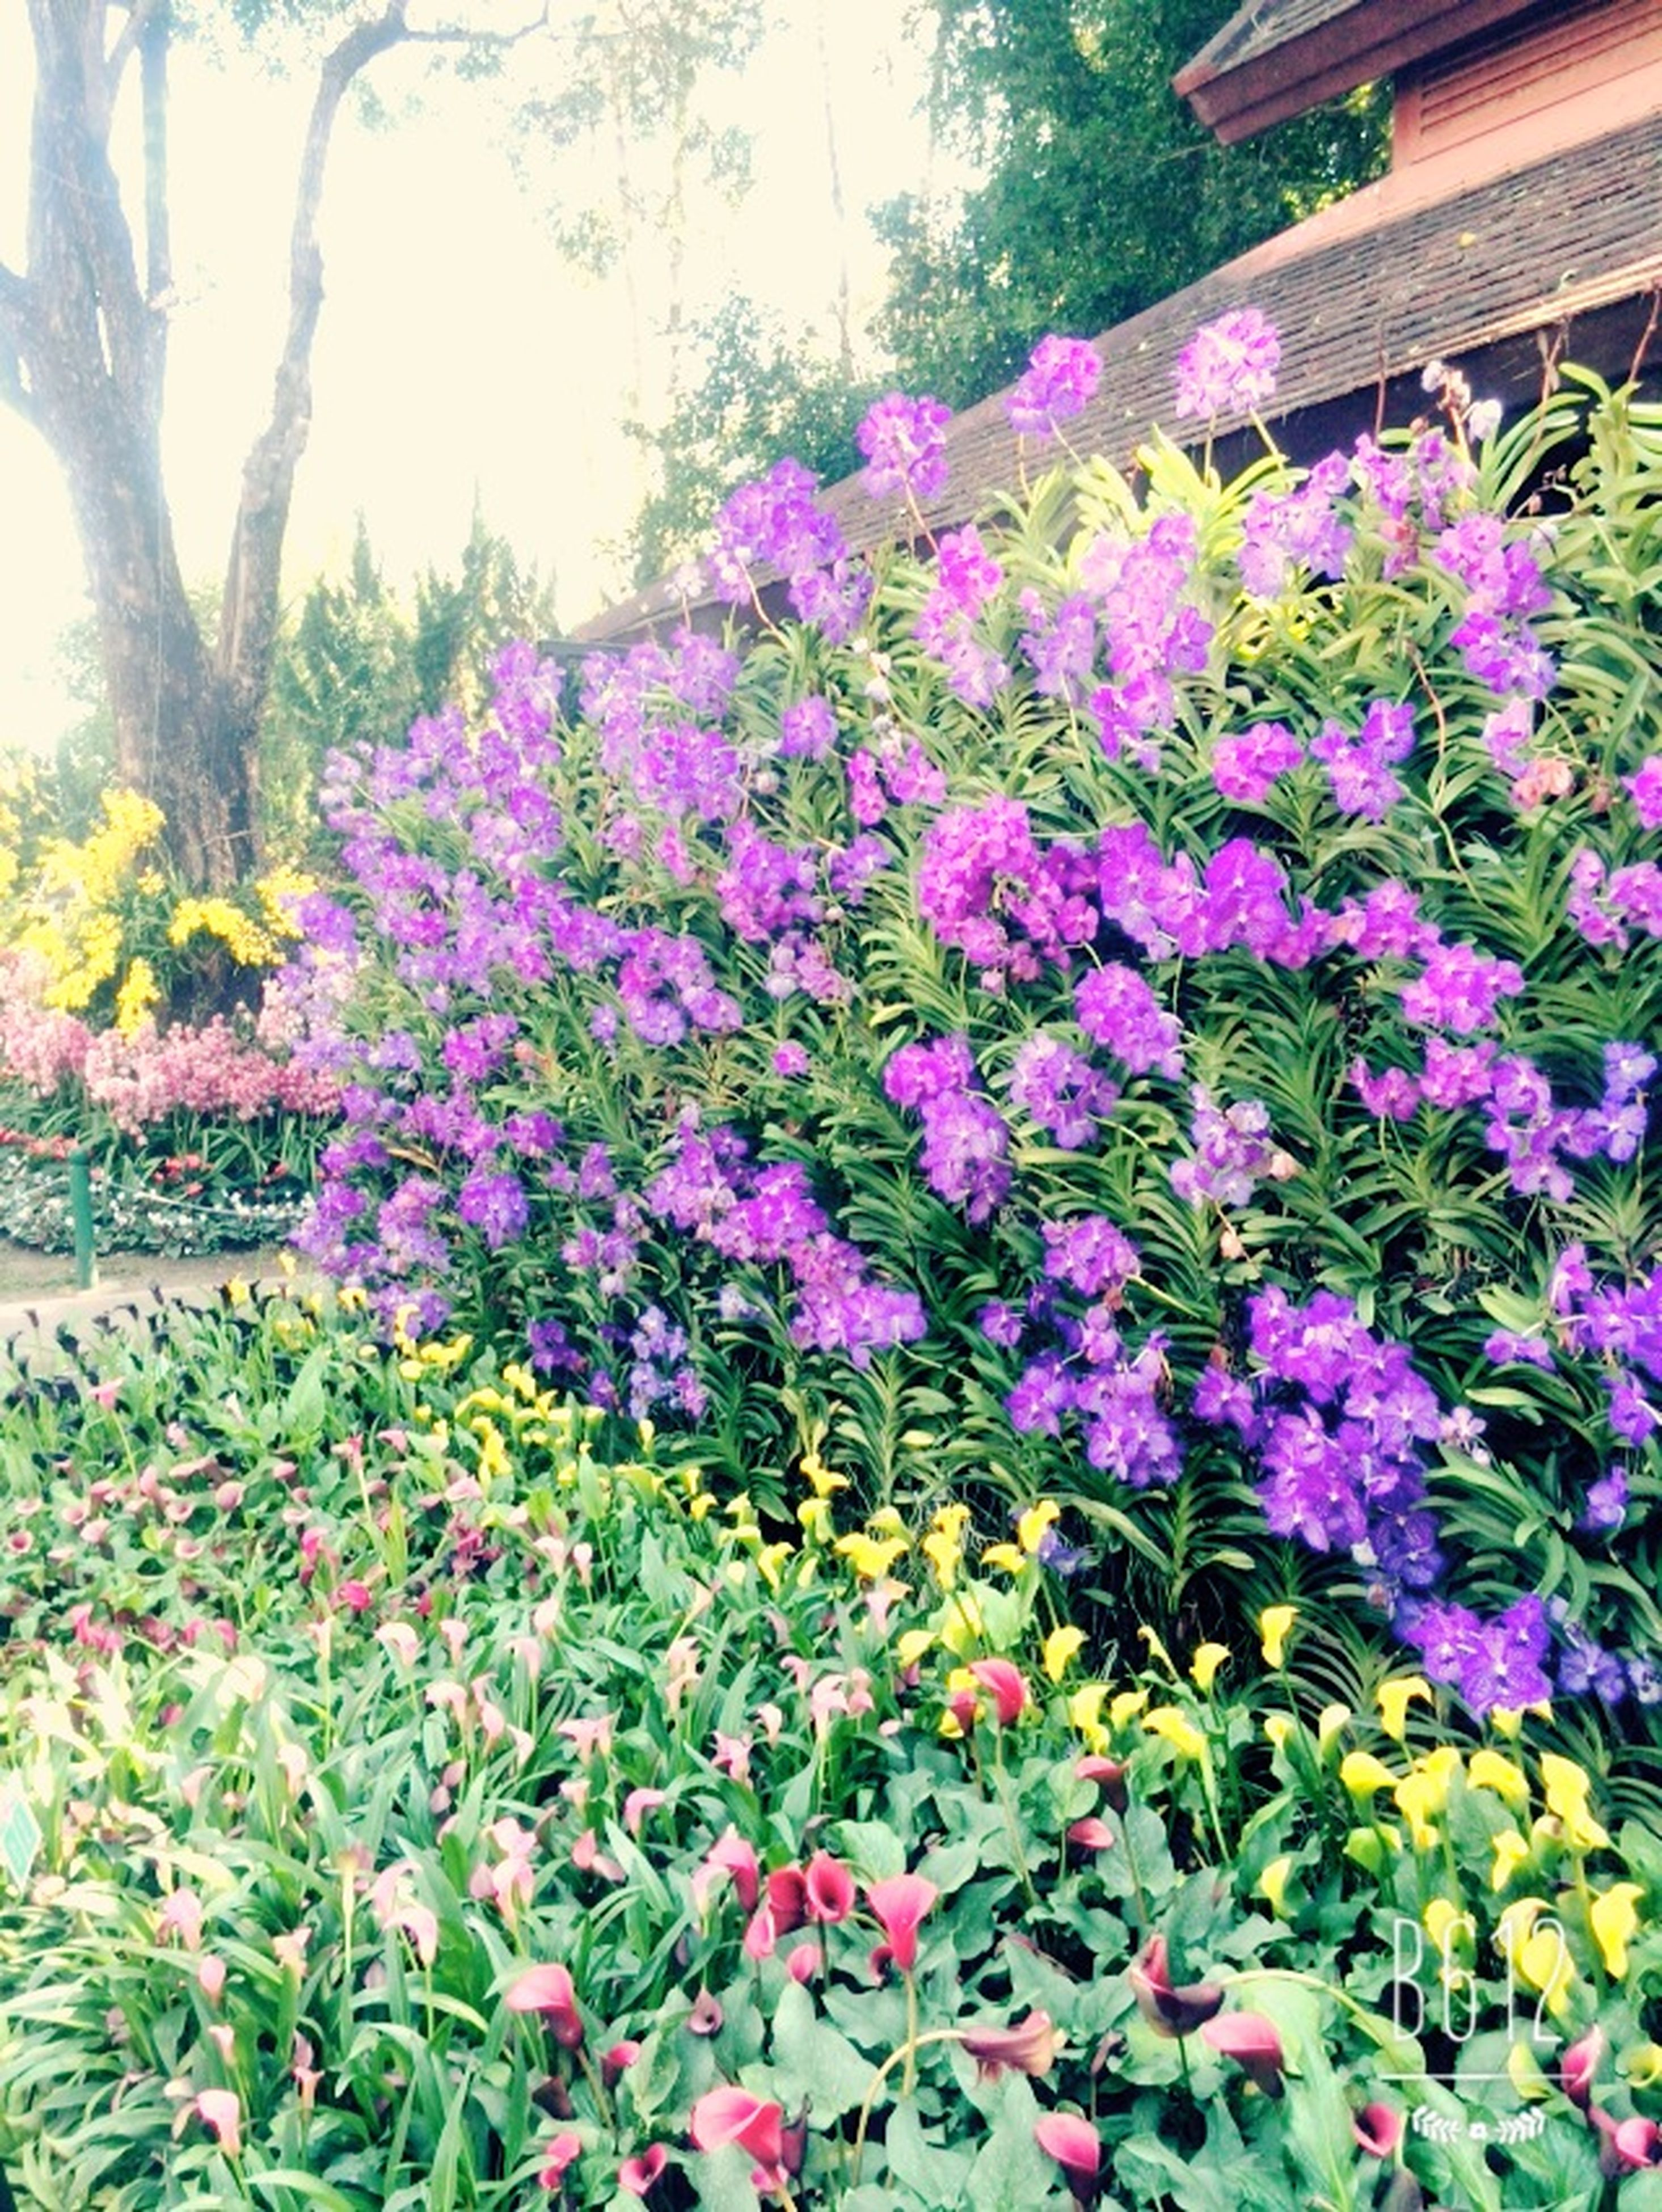 flower, freshness, growth, fragility, beauty in nature, plant, blooming, nature, pink color, petal, in bloom, purple, leaf, abundance, blossom, park - man made space, flower head, day, outdoors, springtime